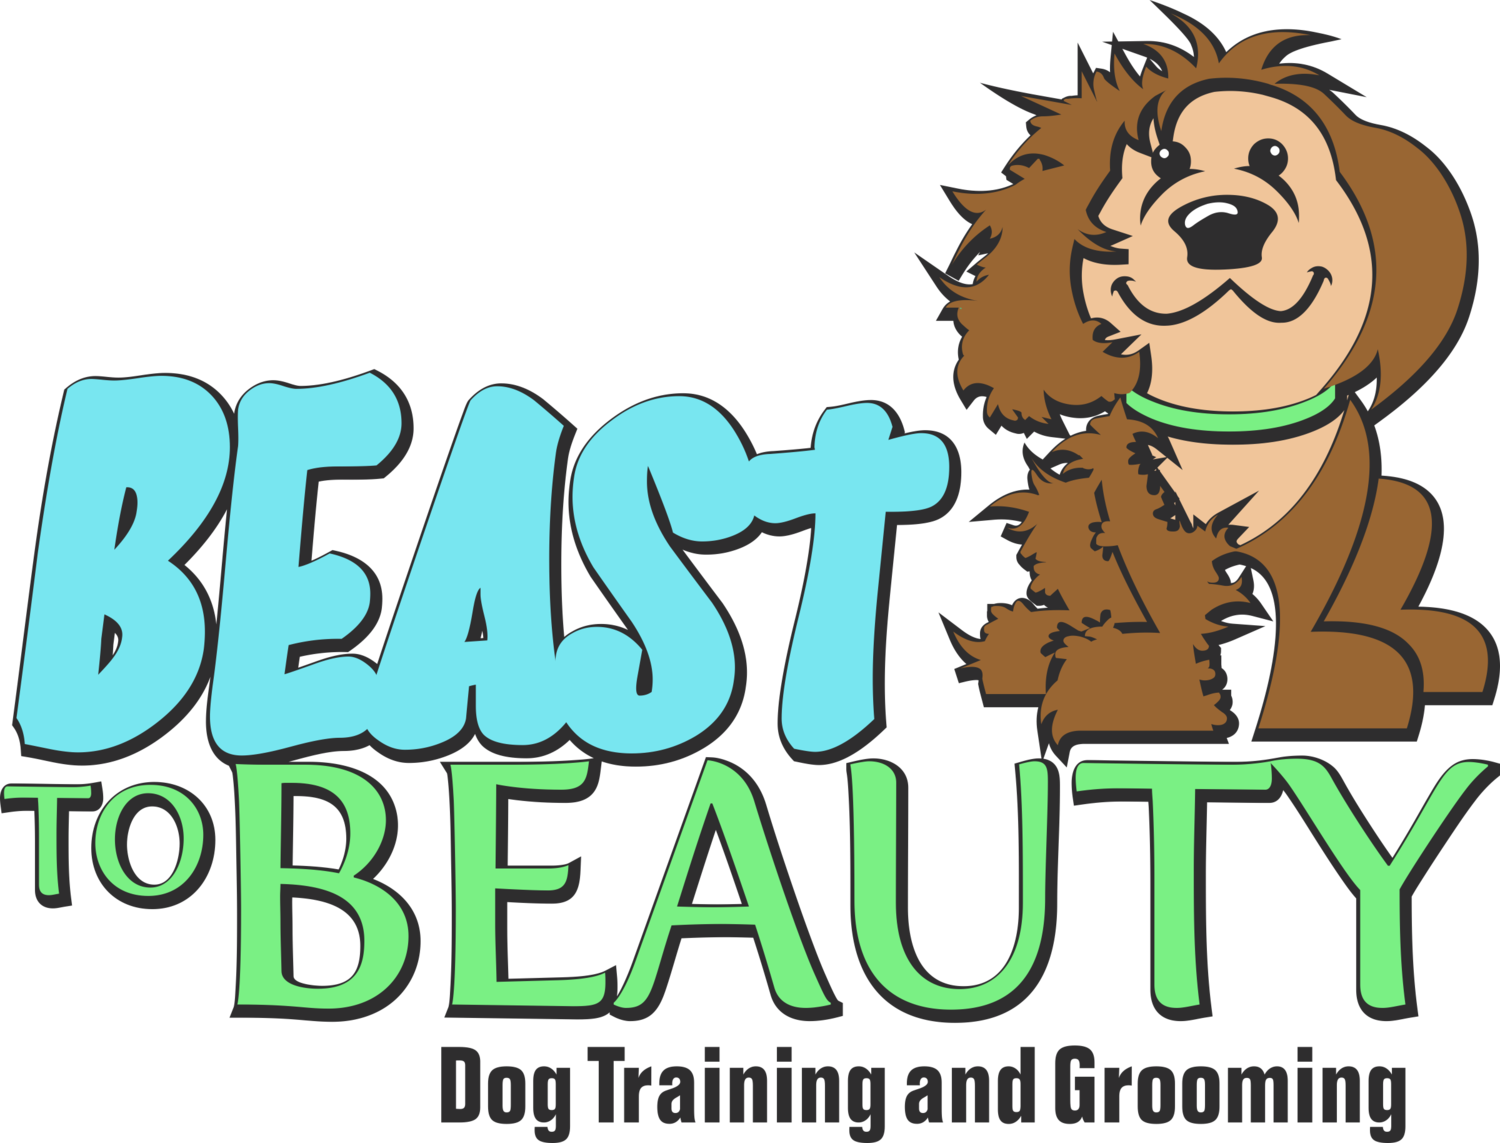 Beast To Beauty Dog Training and Grooming